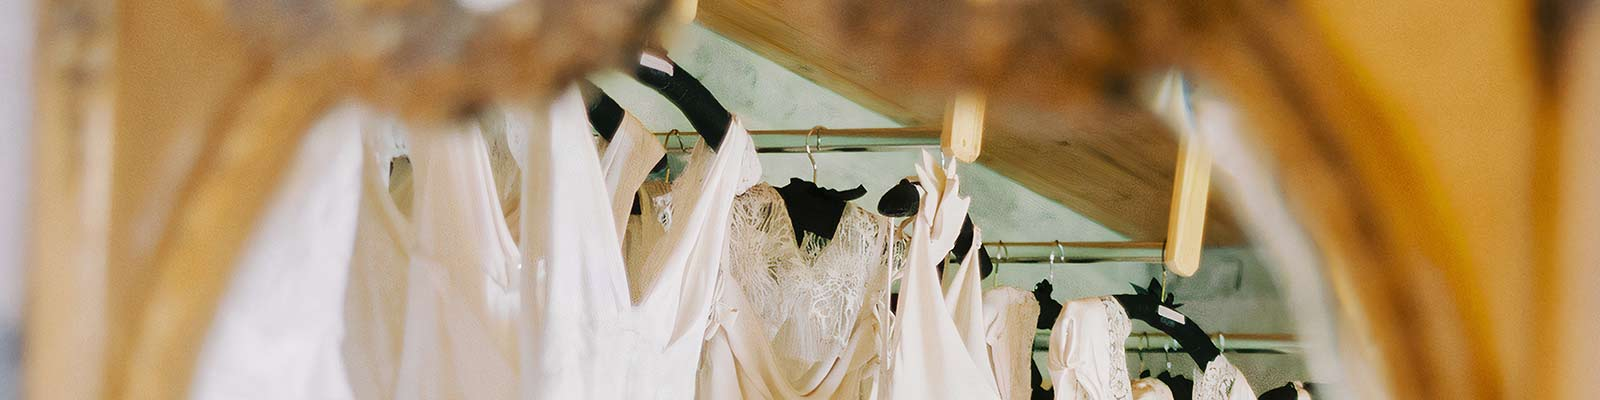 bridal dresses in a mirror at Delphines studio in Ireland